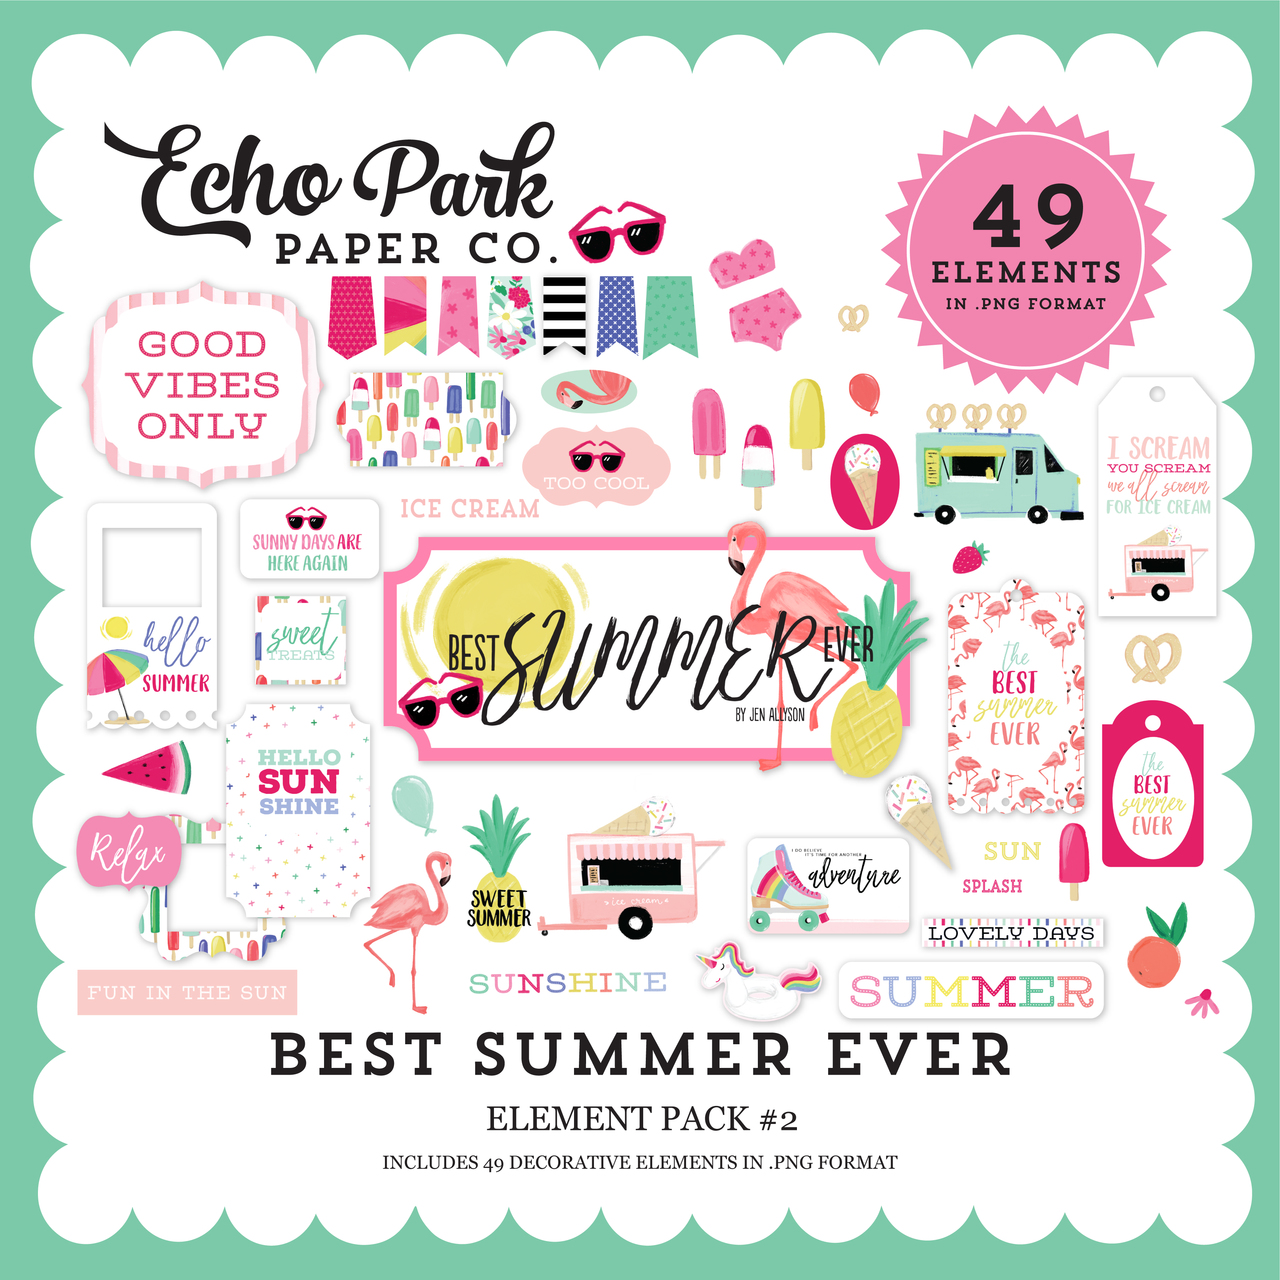 Best Summer Ever Element Pack #2